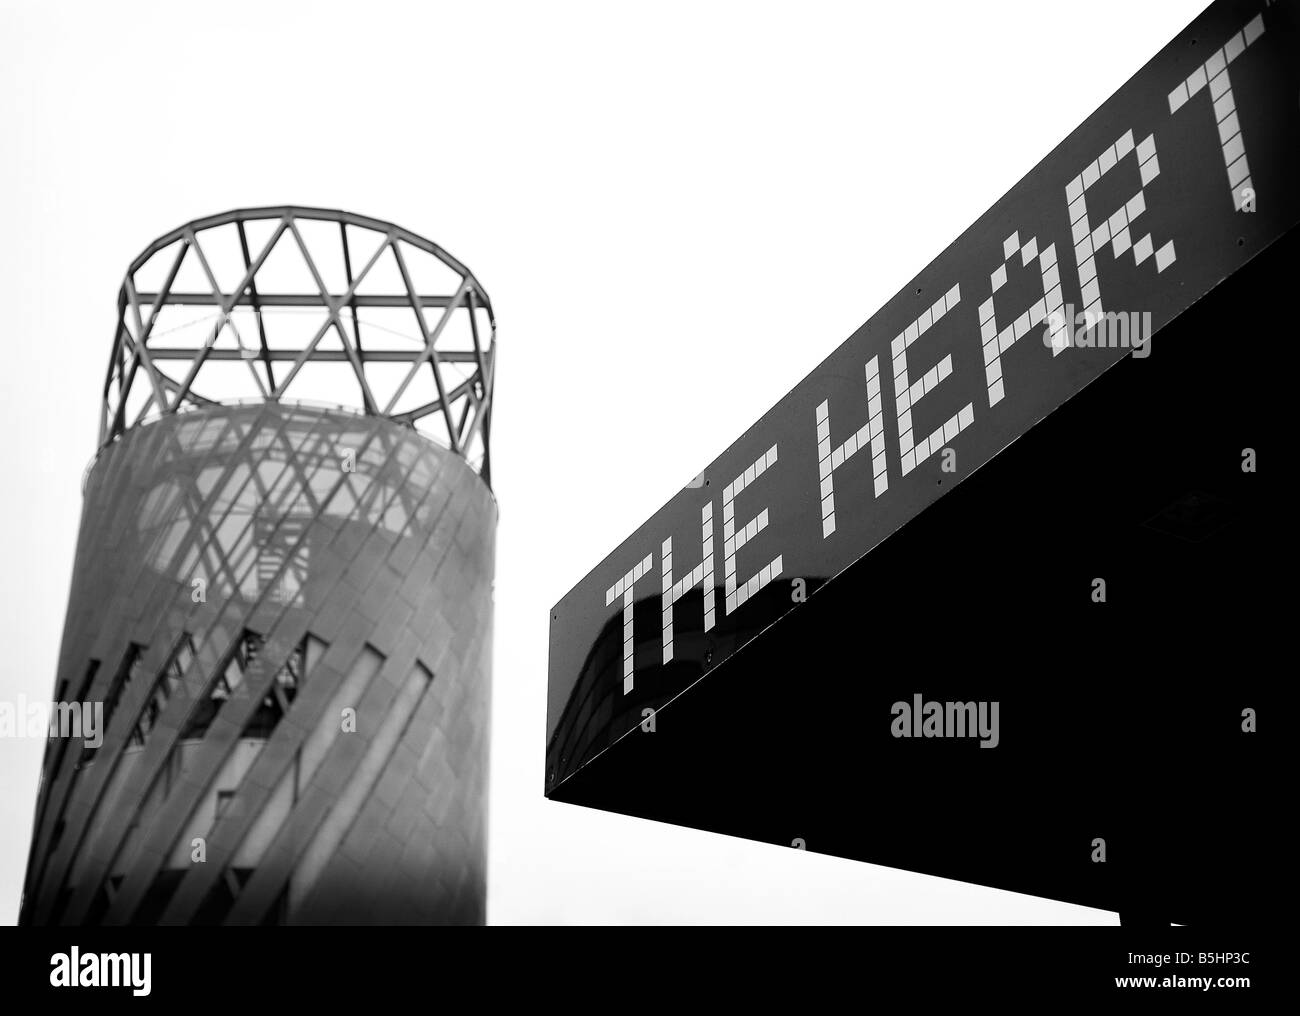 the heart salford quays lowry arts centre media city manchester uk travel tourism design architecture building - Stock Image